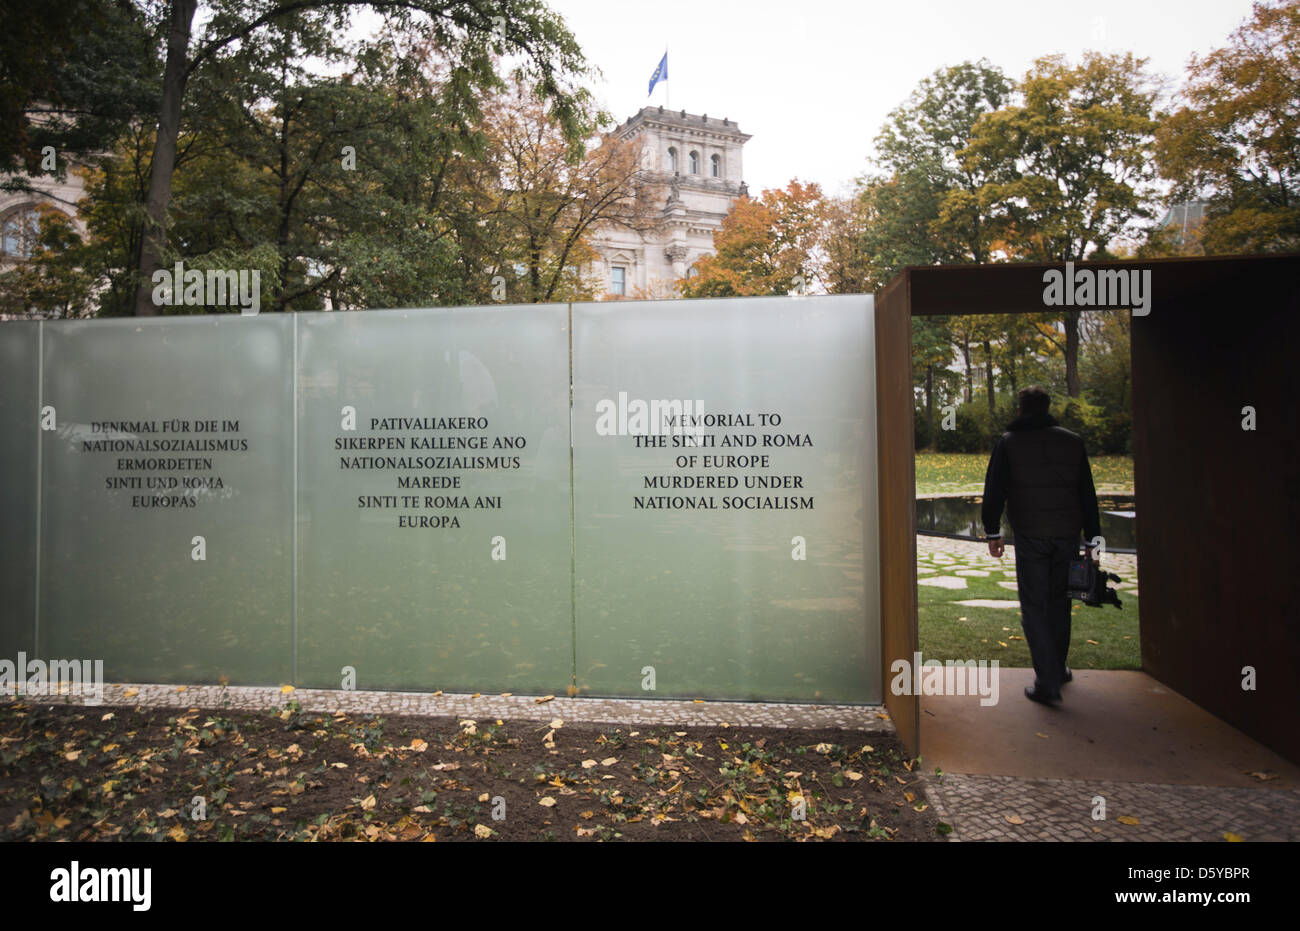 A man enters the memorial site for the Sinti and Roma killed during National Socialism in Berin, Germany, 22 October - Stock Image